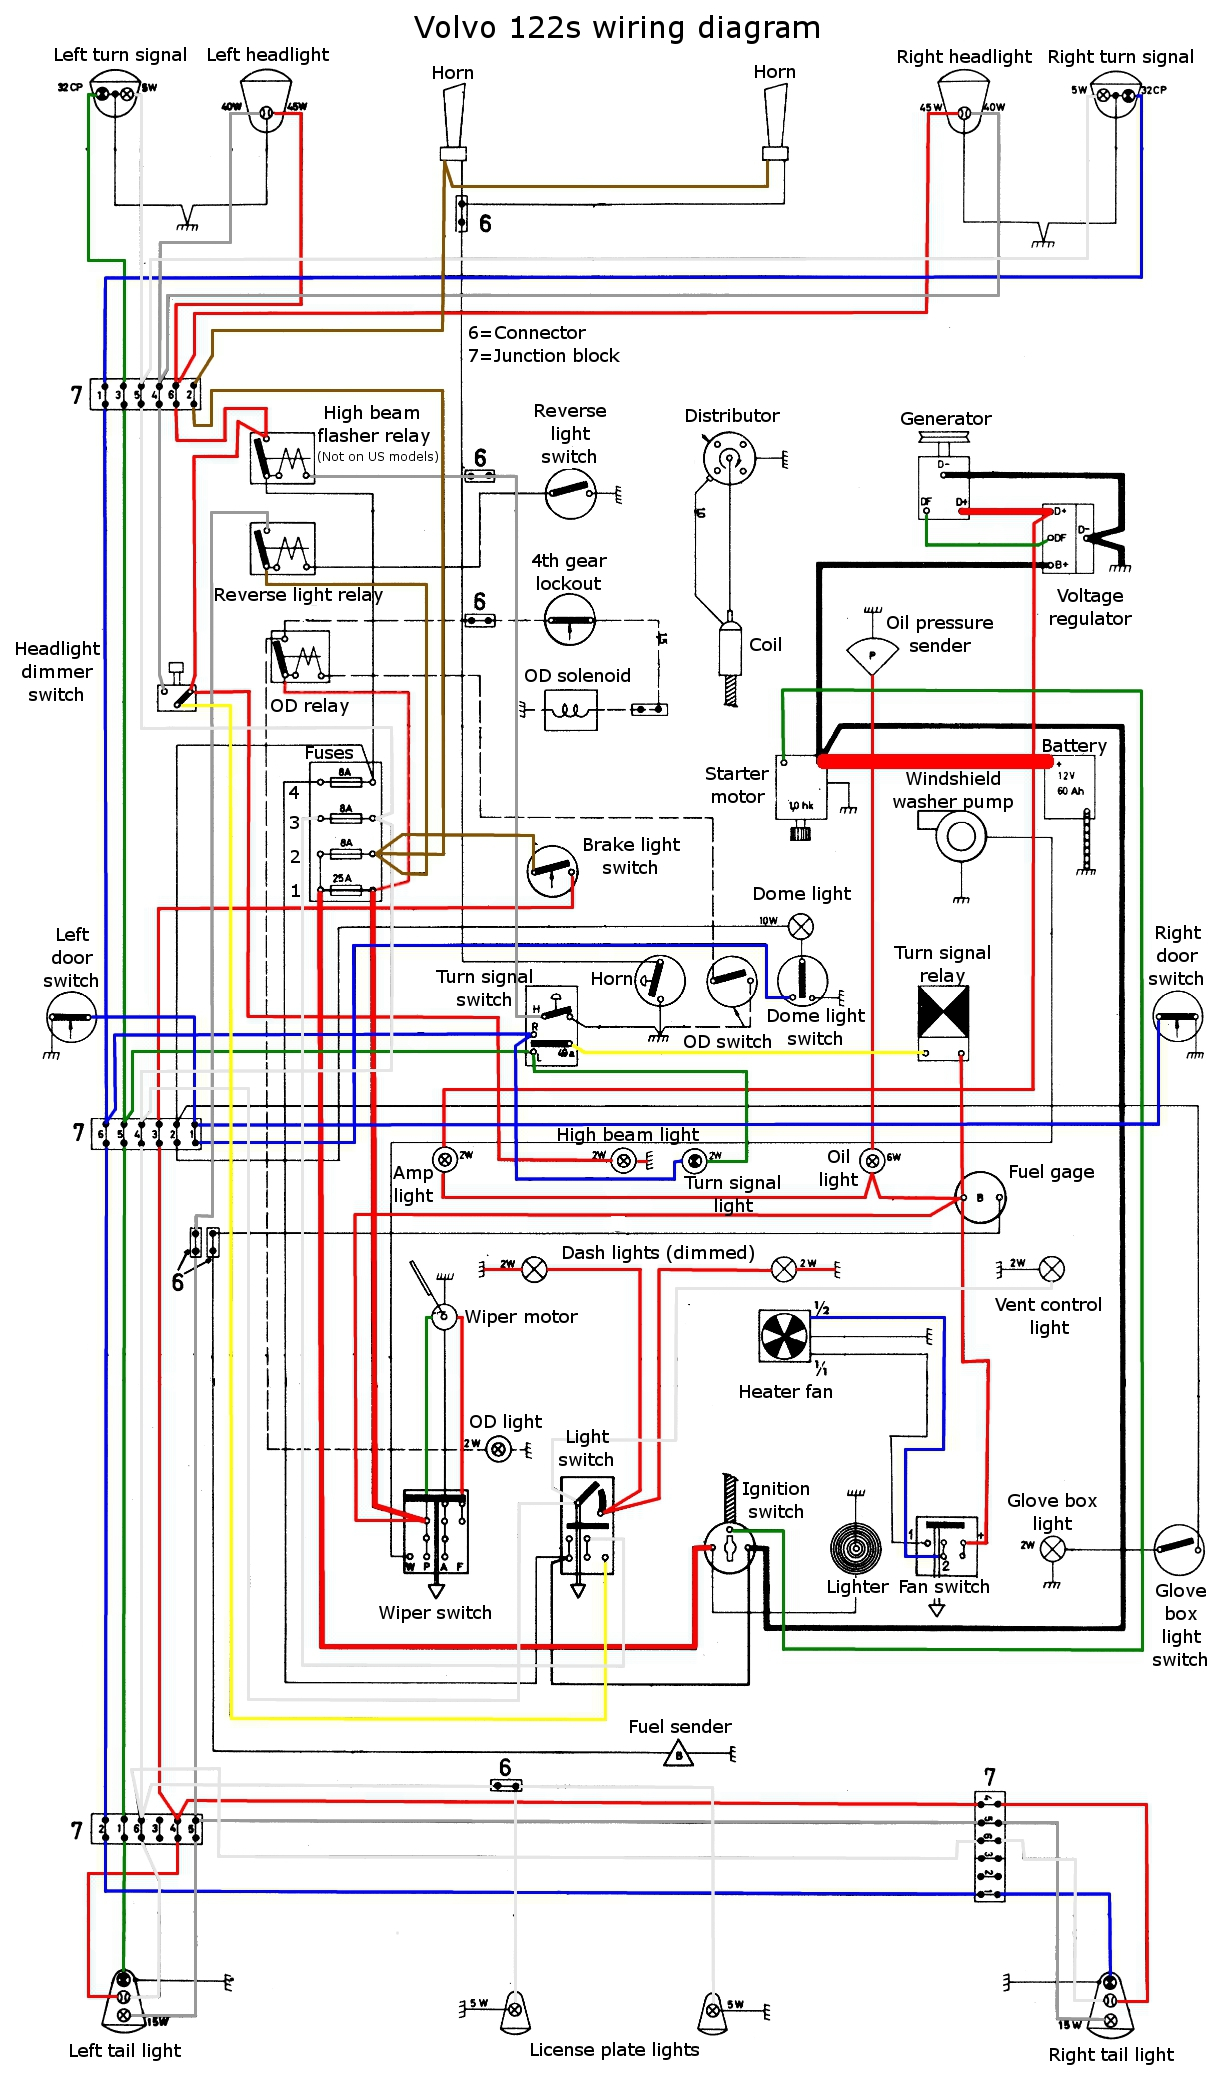 122 wiring diagram color wiring gremlins 1999 volvo c70 wiring diagram at bayanpartner.co